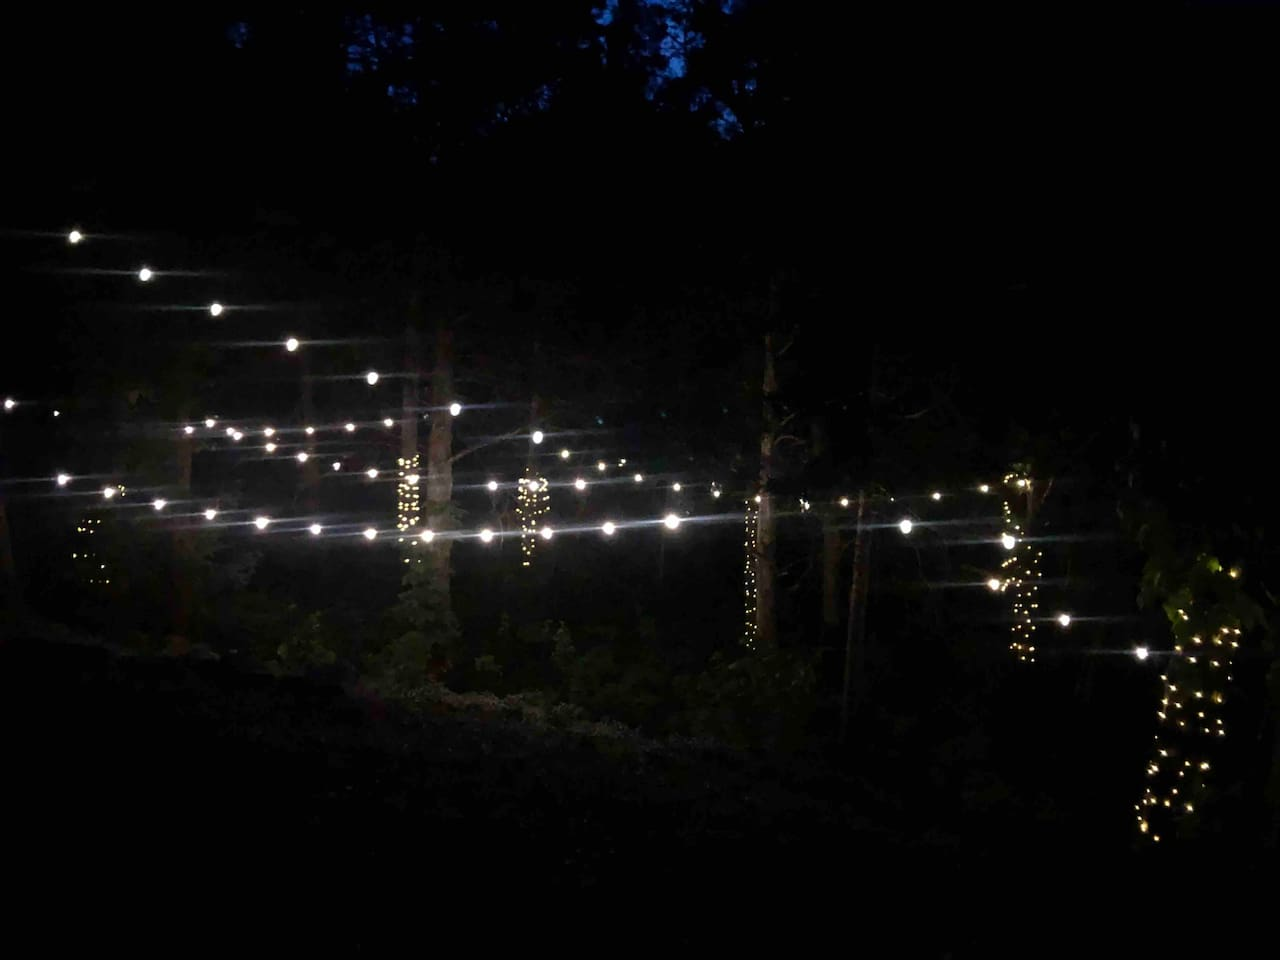 Enjoy the evening with our perfectly quaint + lighted backyard.